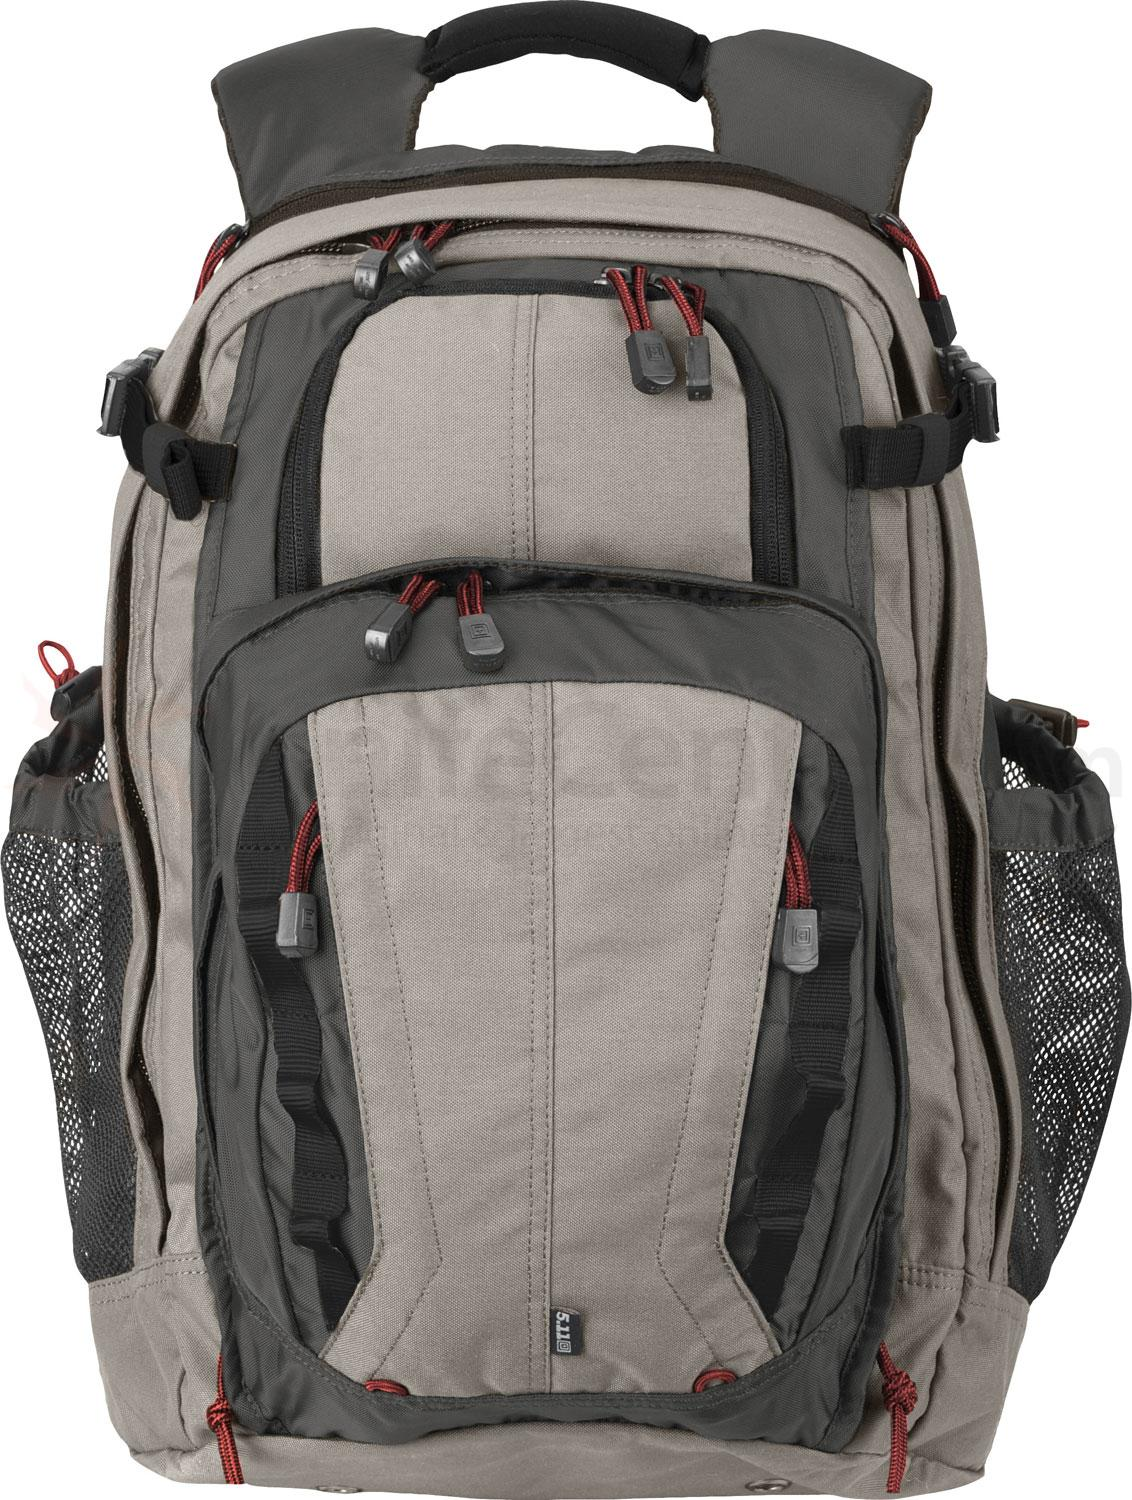 5.11 Tactical Covrt 18 Backpack, Ice (56961-049)